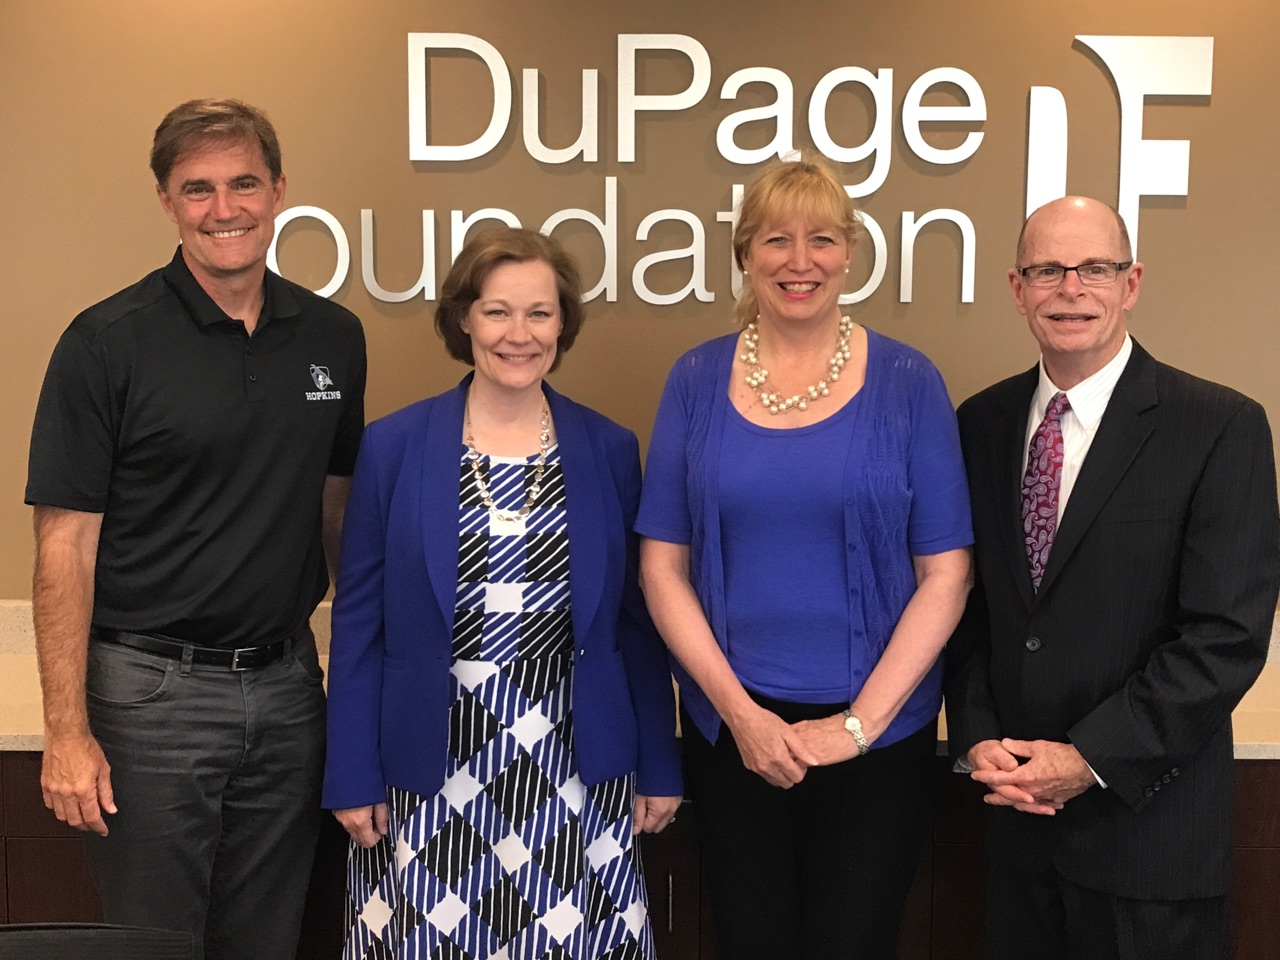 Gustafson Family Foundation Makes Landmark Investment in DuPage Foundation to Forge New Partnership